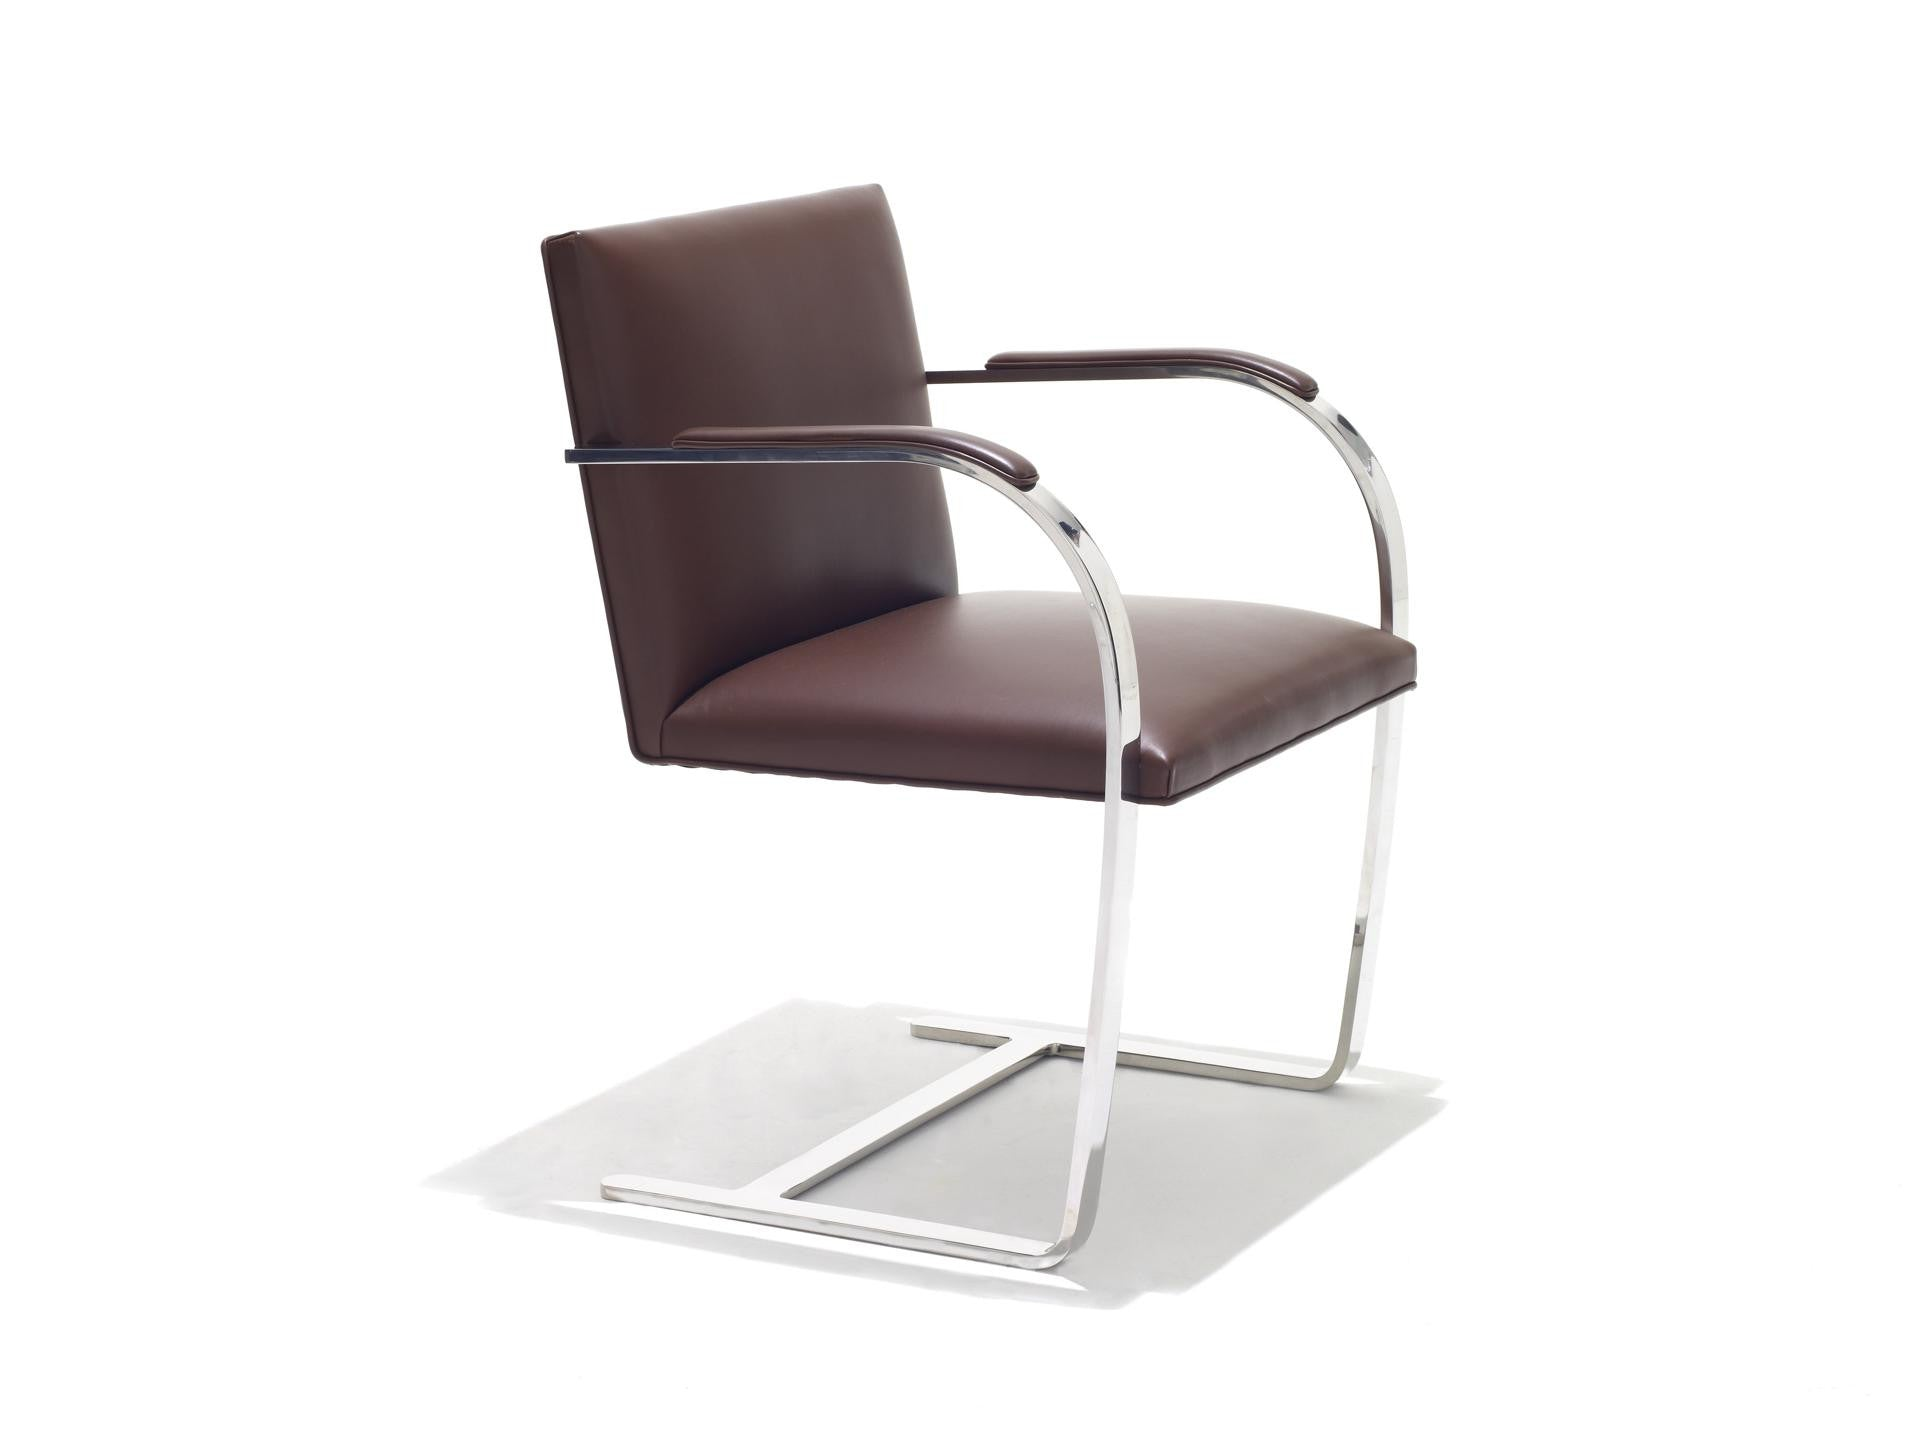 Brno Chair Flat Bar with Armpads